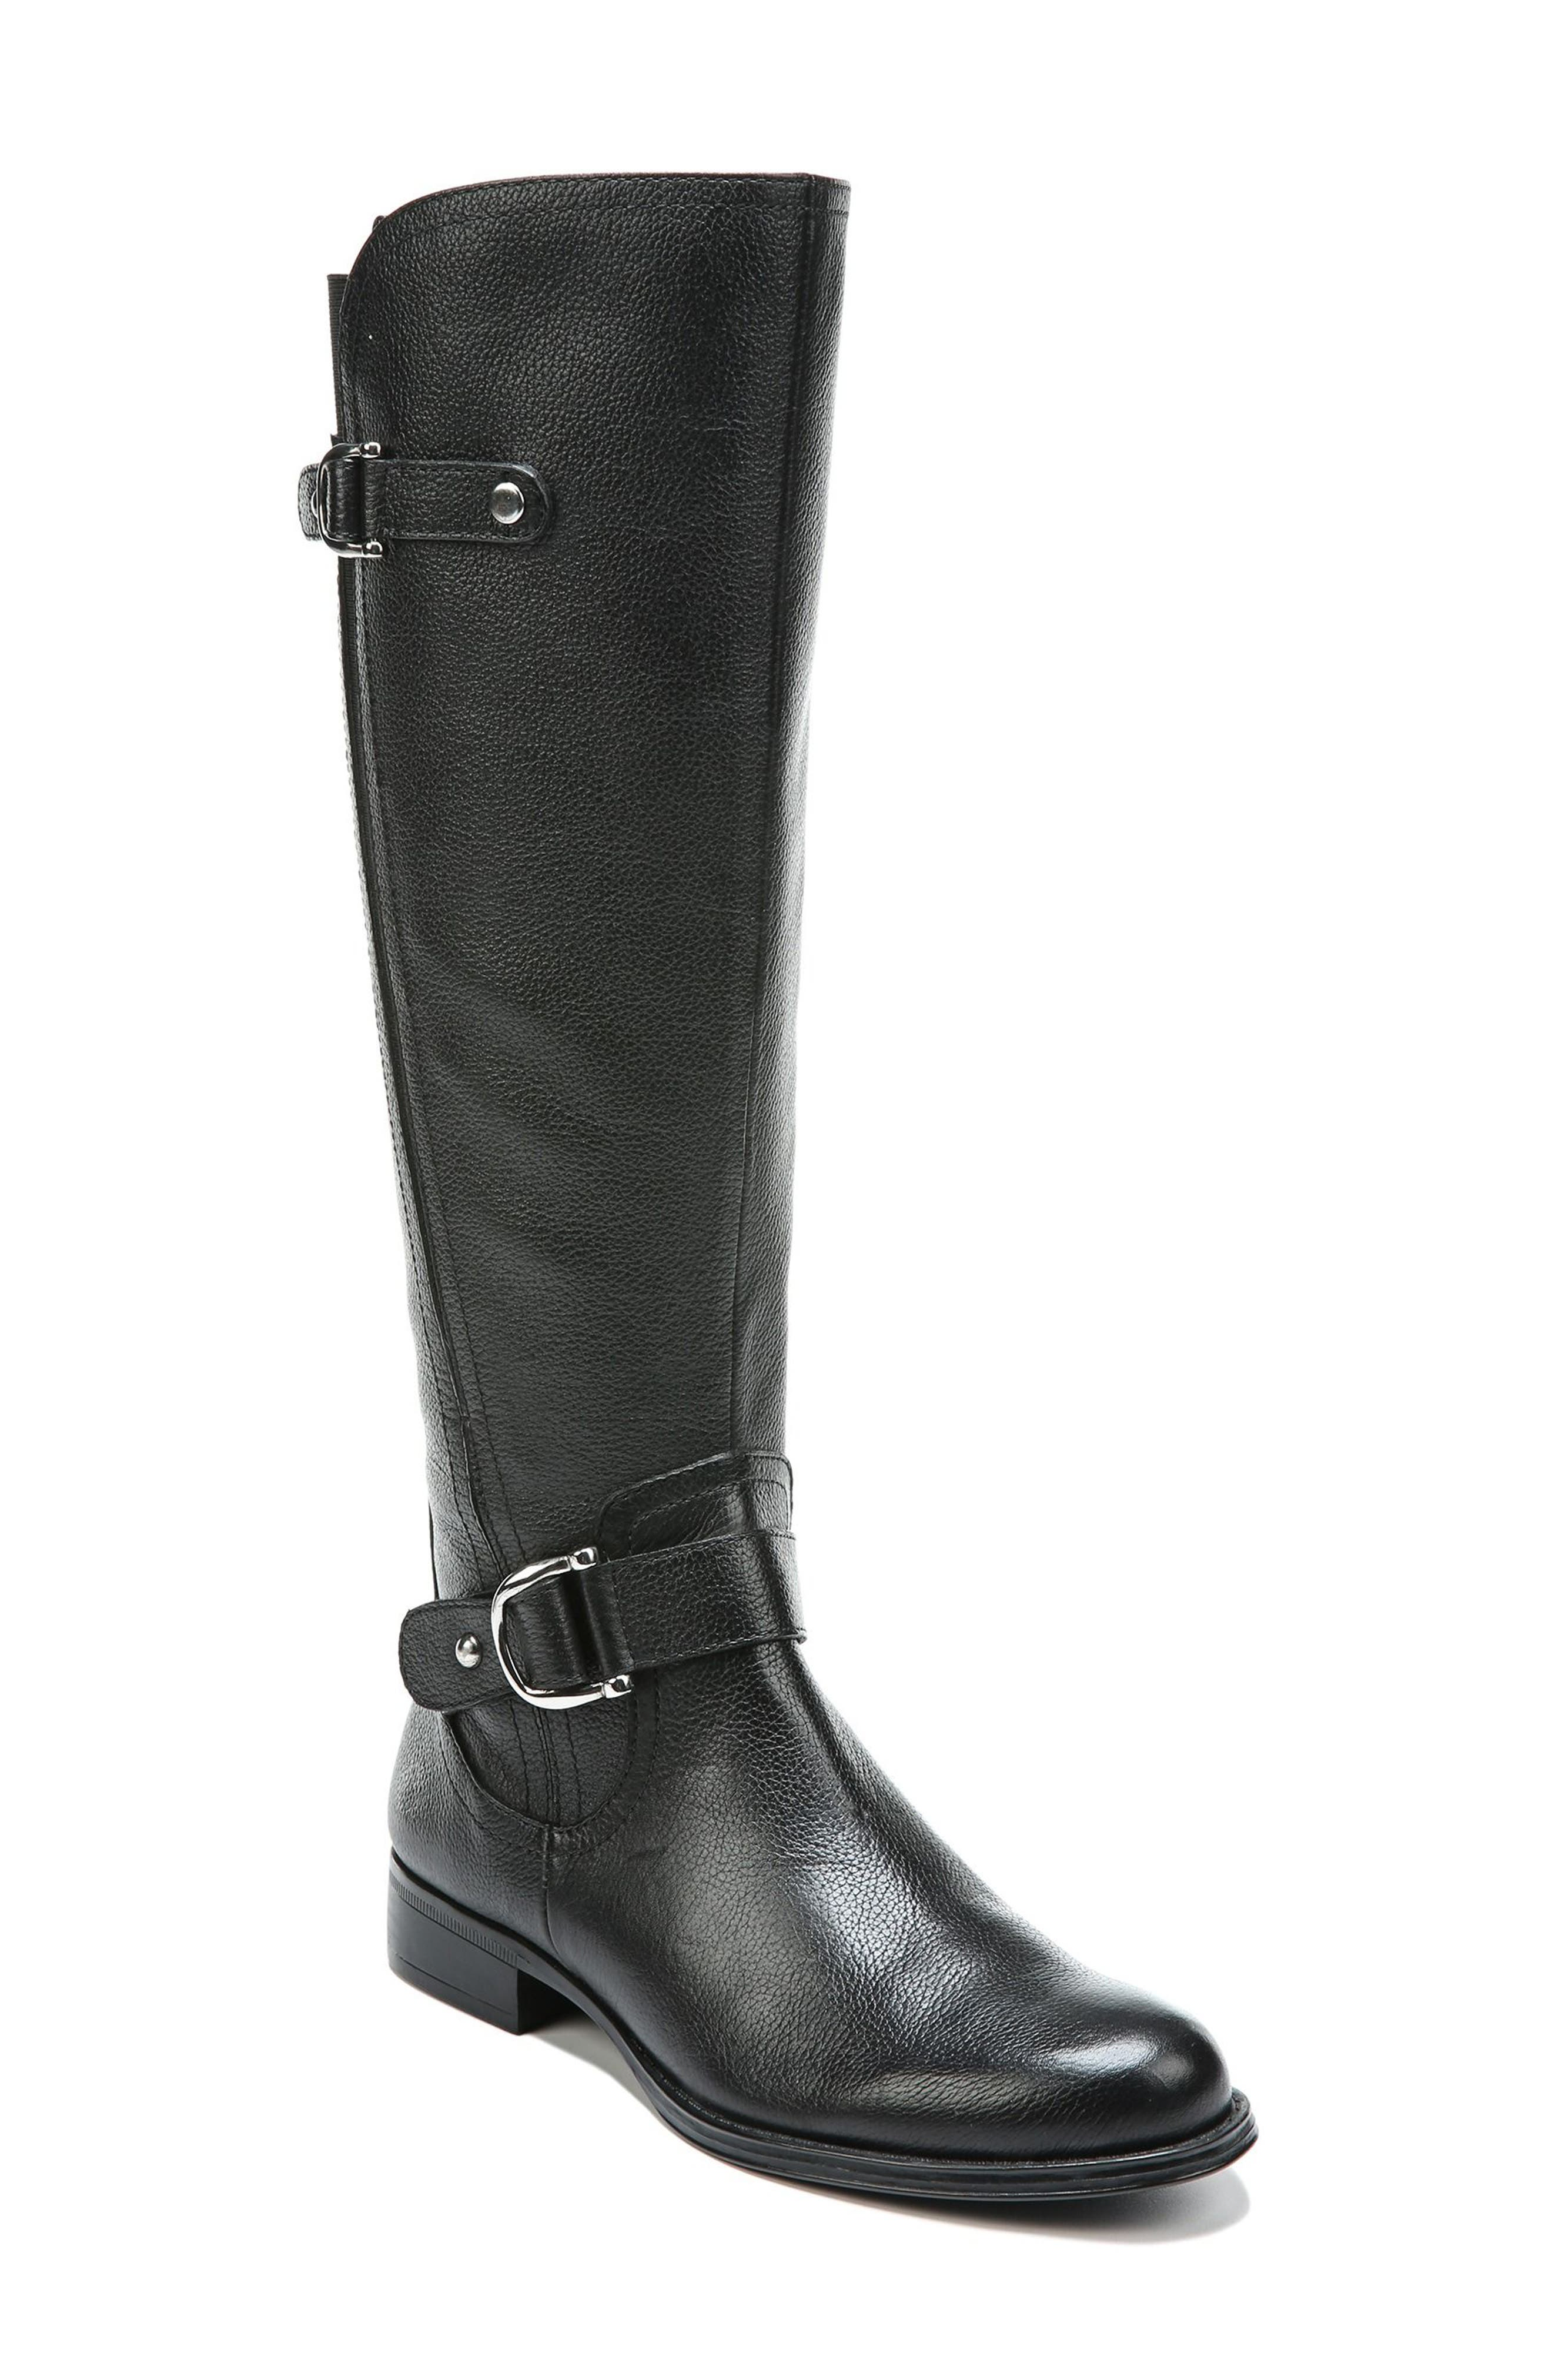 NATURALIZER, Jenelle Tall Boot, Main thumbnail 1, color, BLACK LEATHER